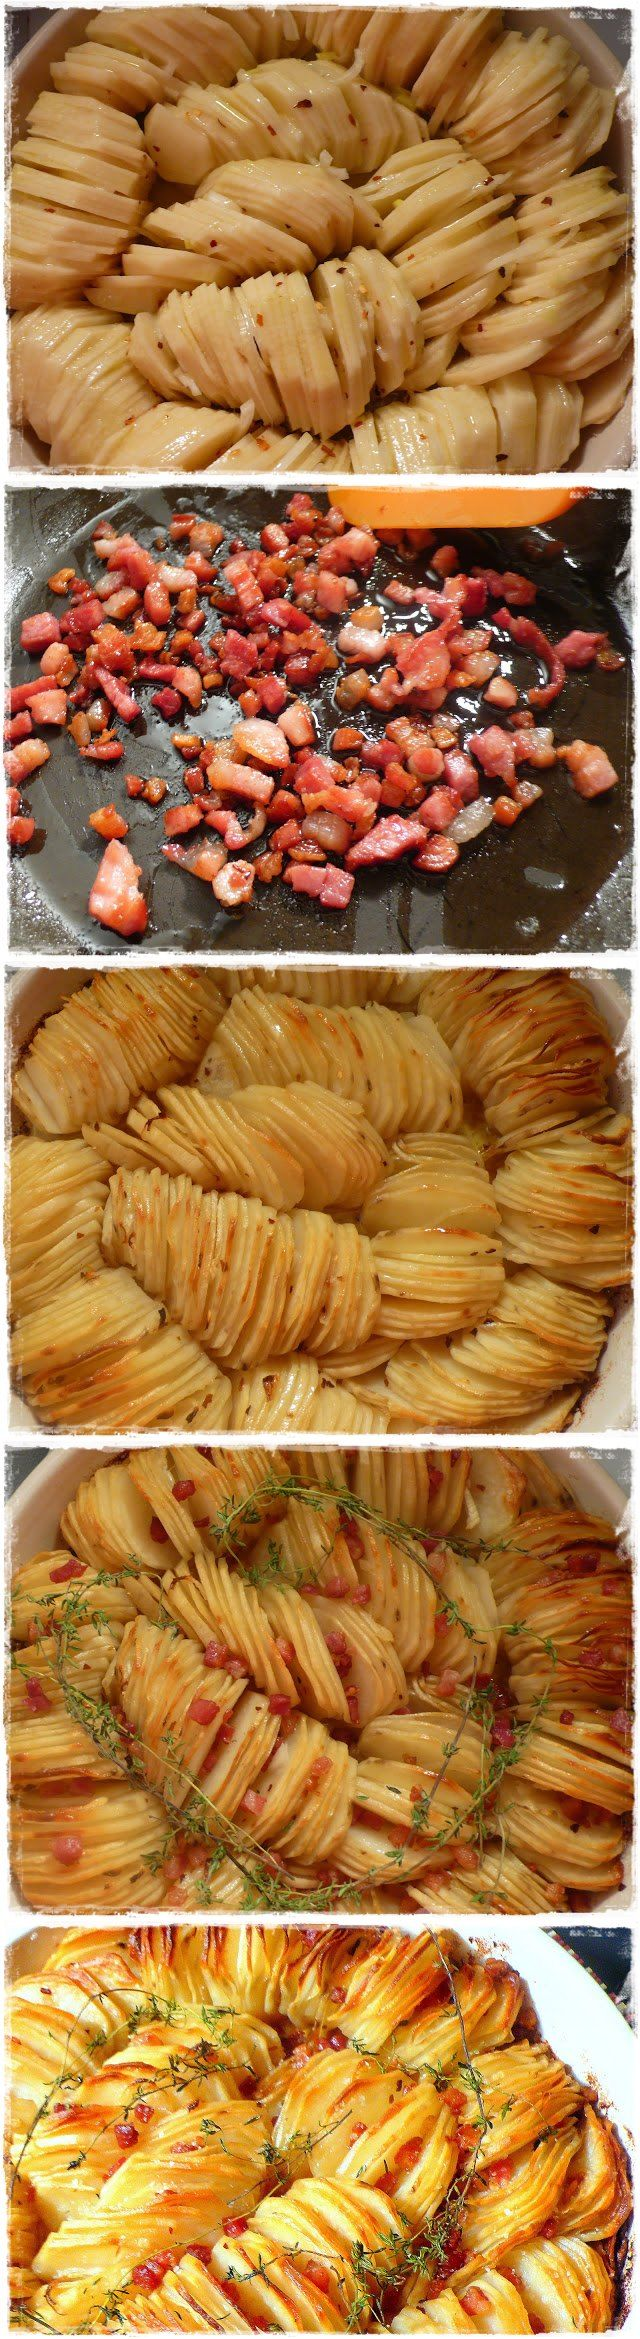 There are many way you can cook potatoes, but the recipe I found on Angela's website is by far one of the coolest :) I think for a dinner party this will m